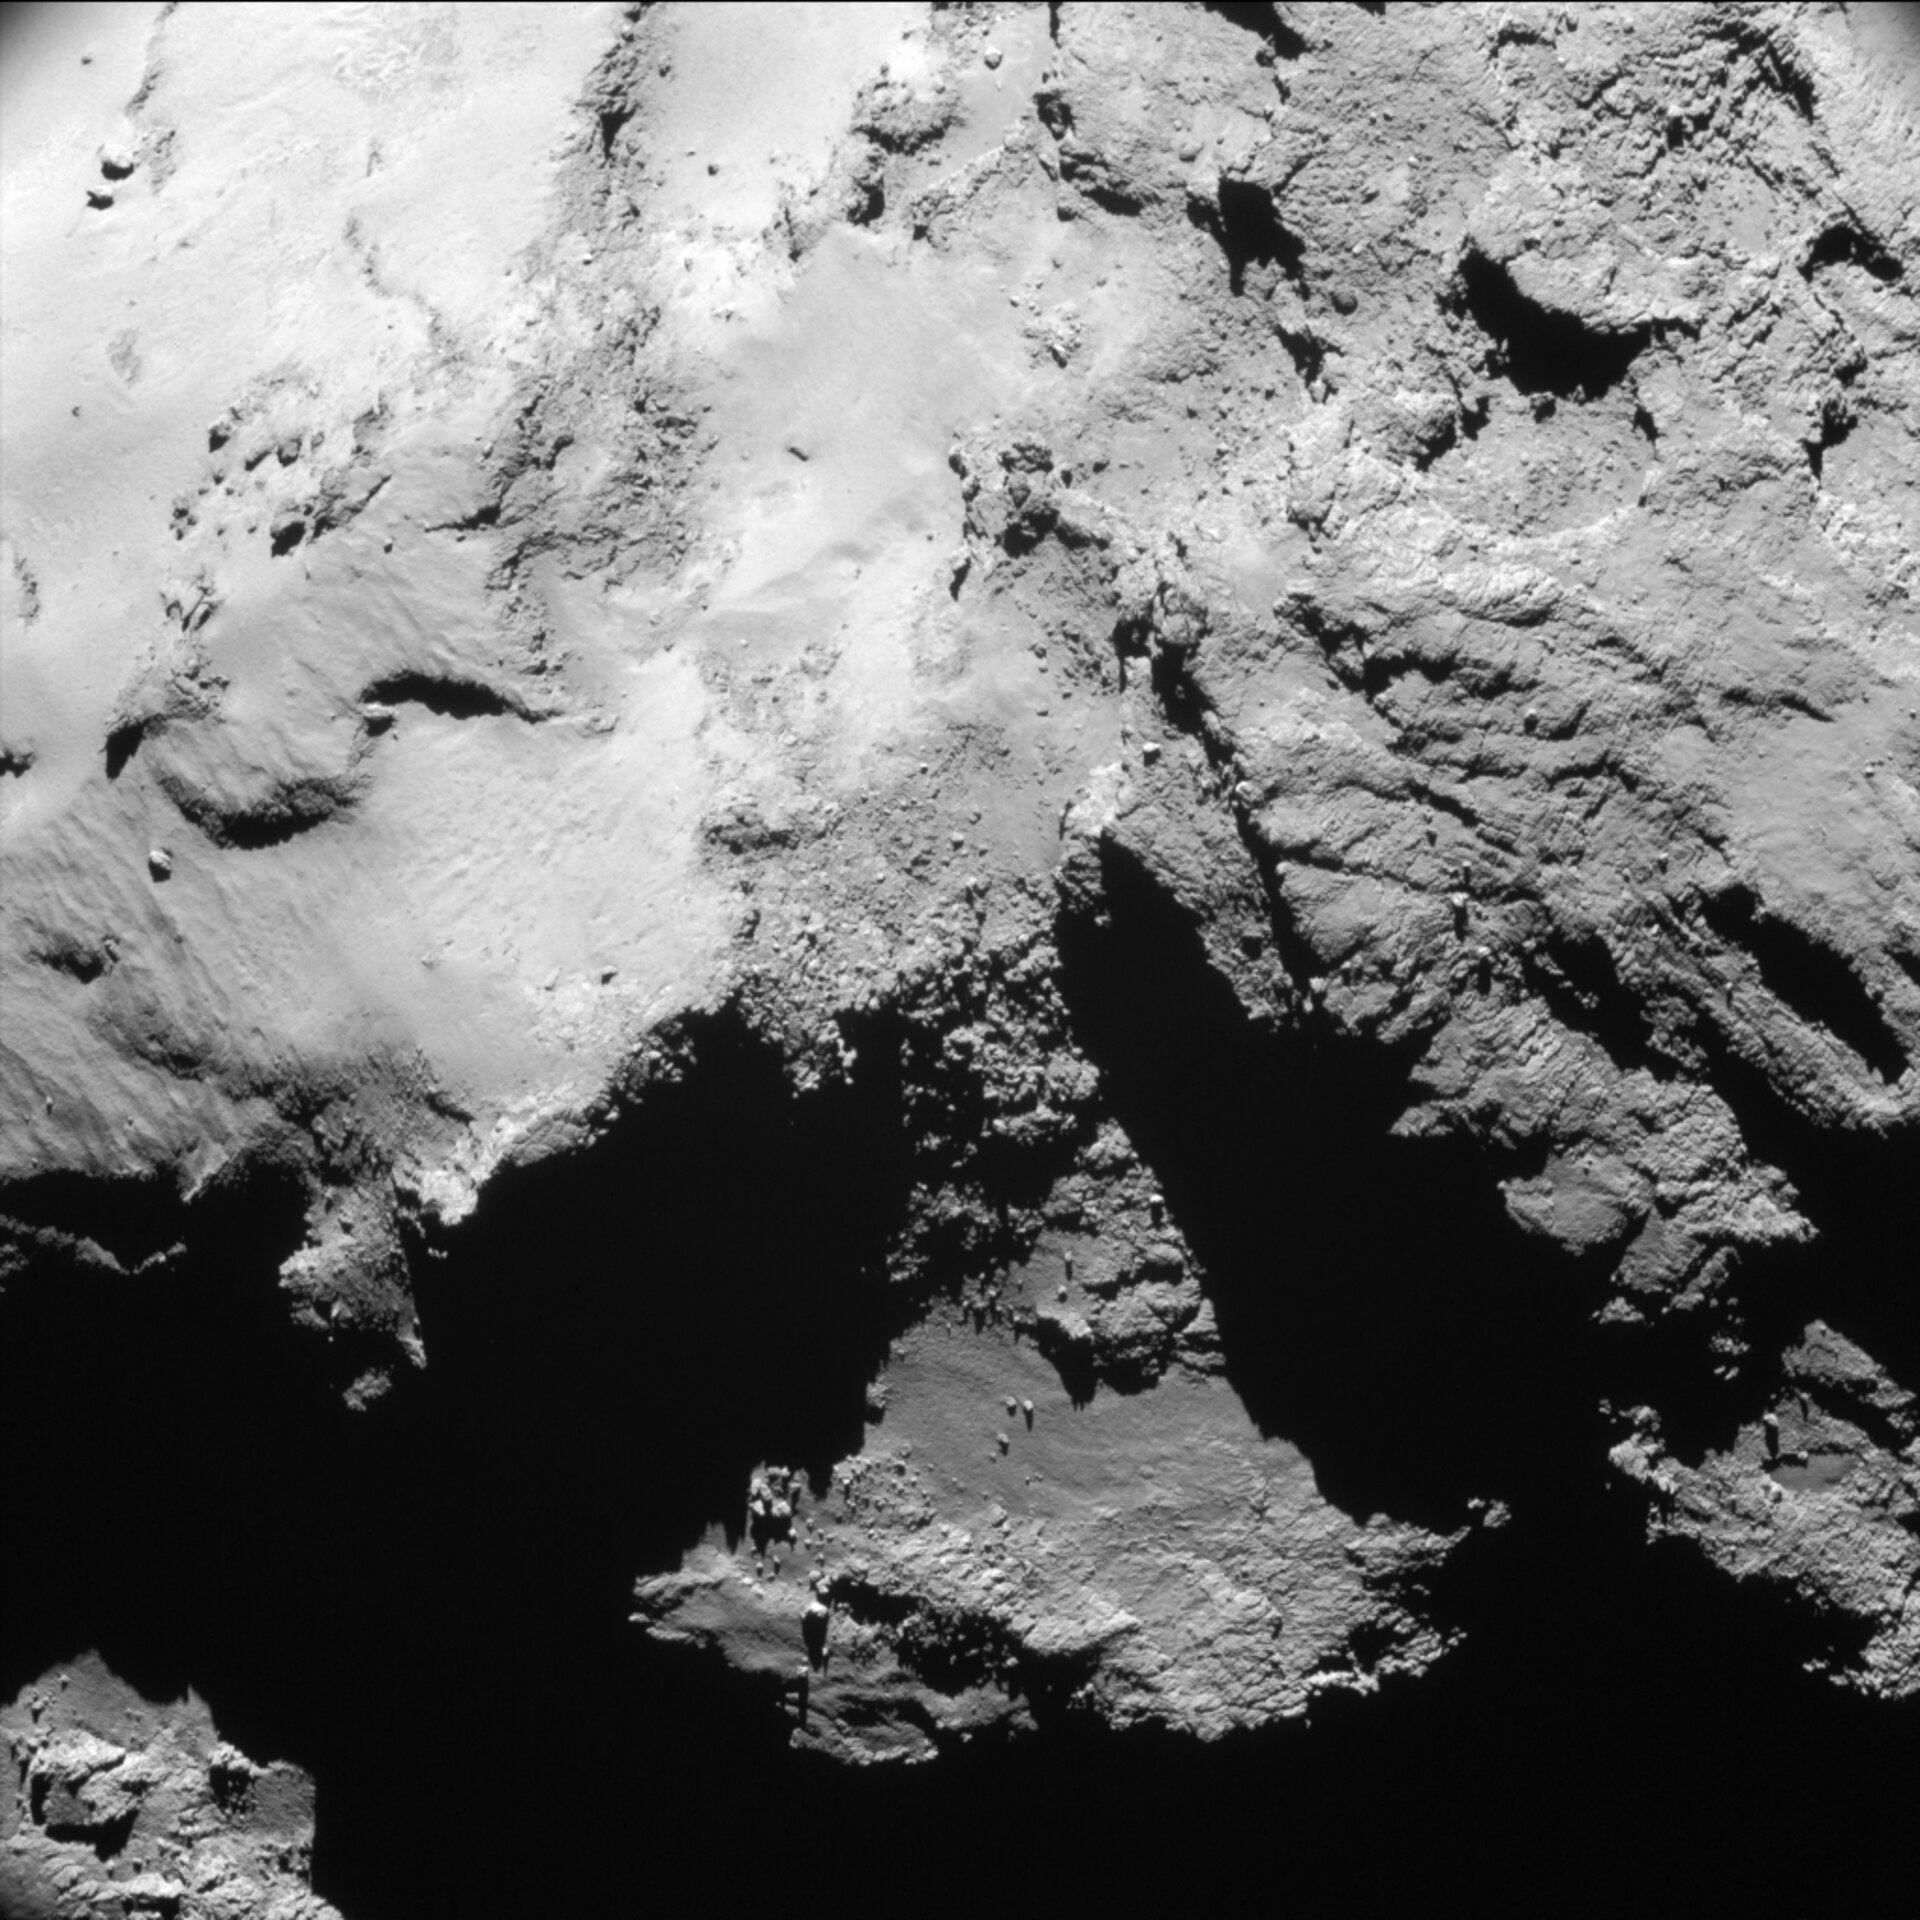 Year at a comet, February 2015